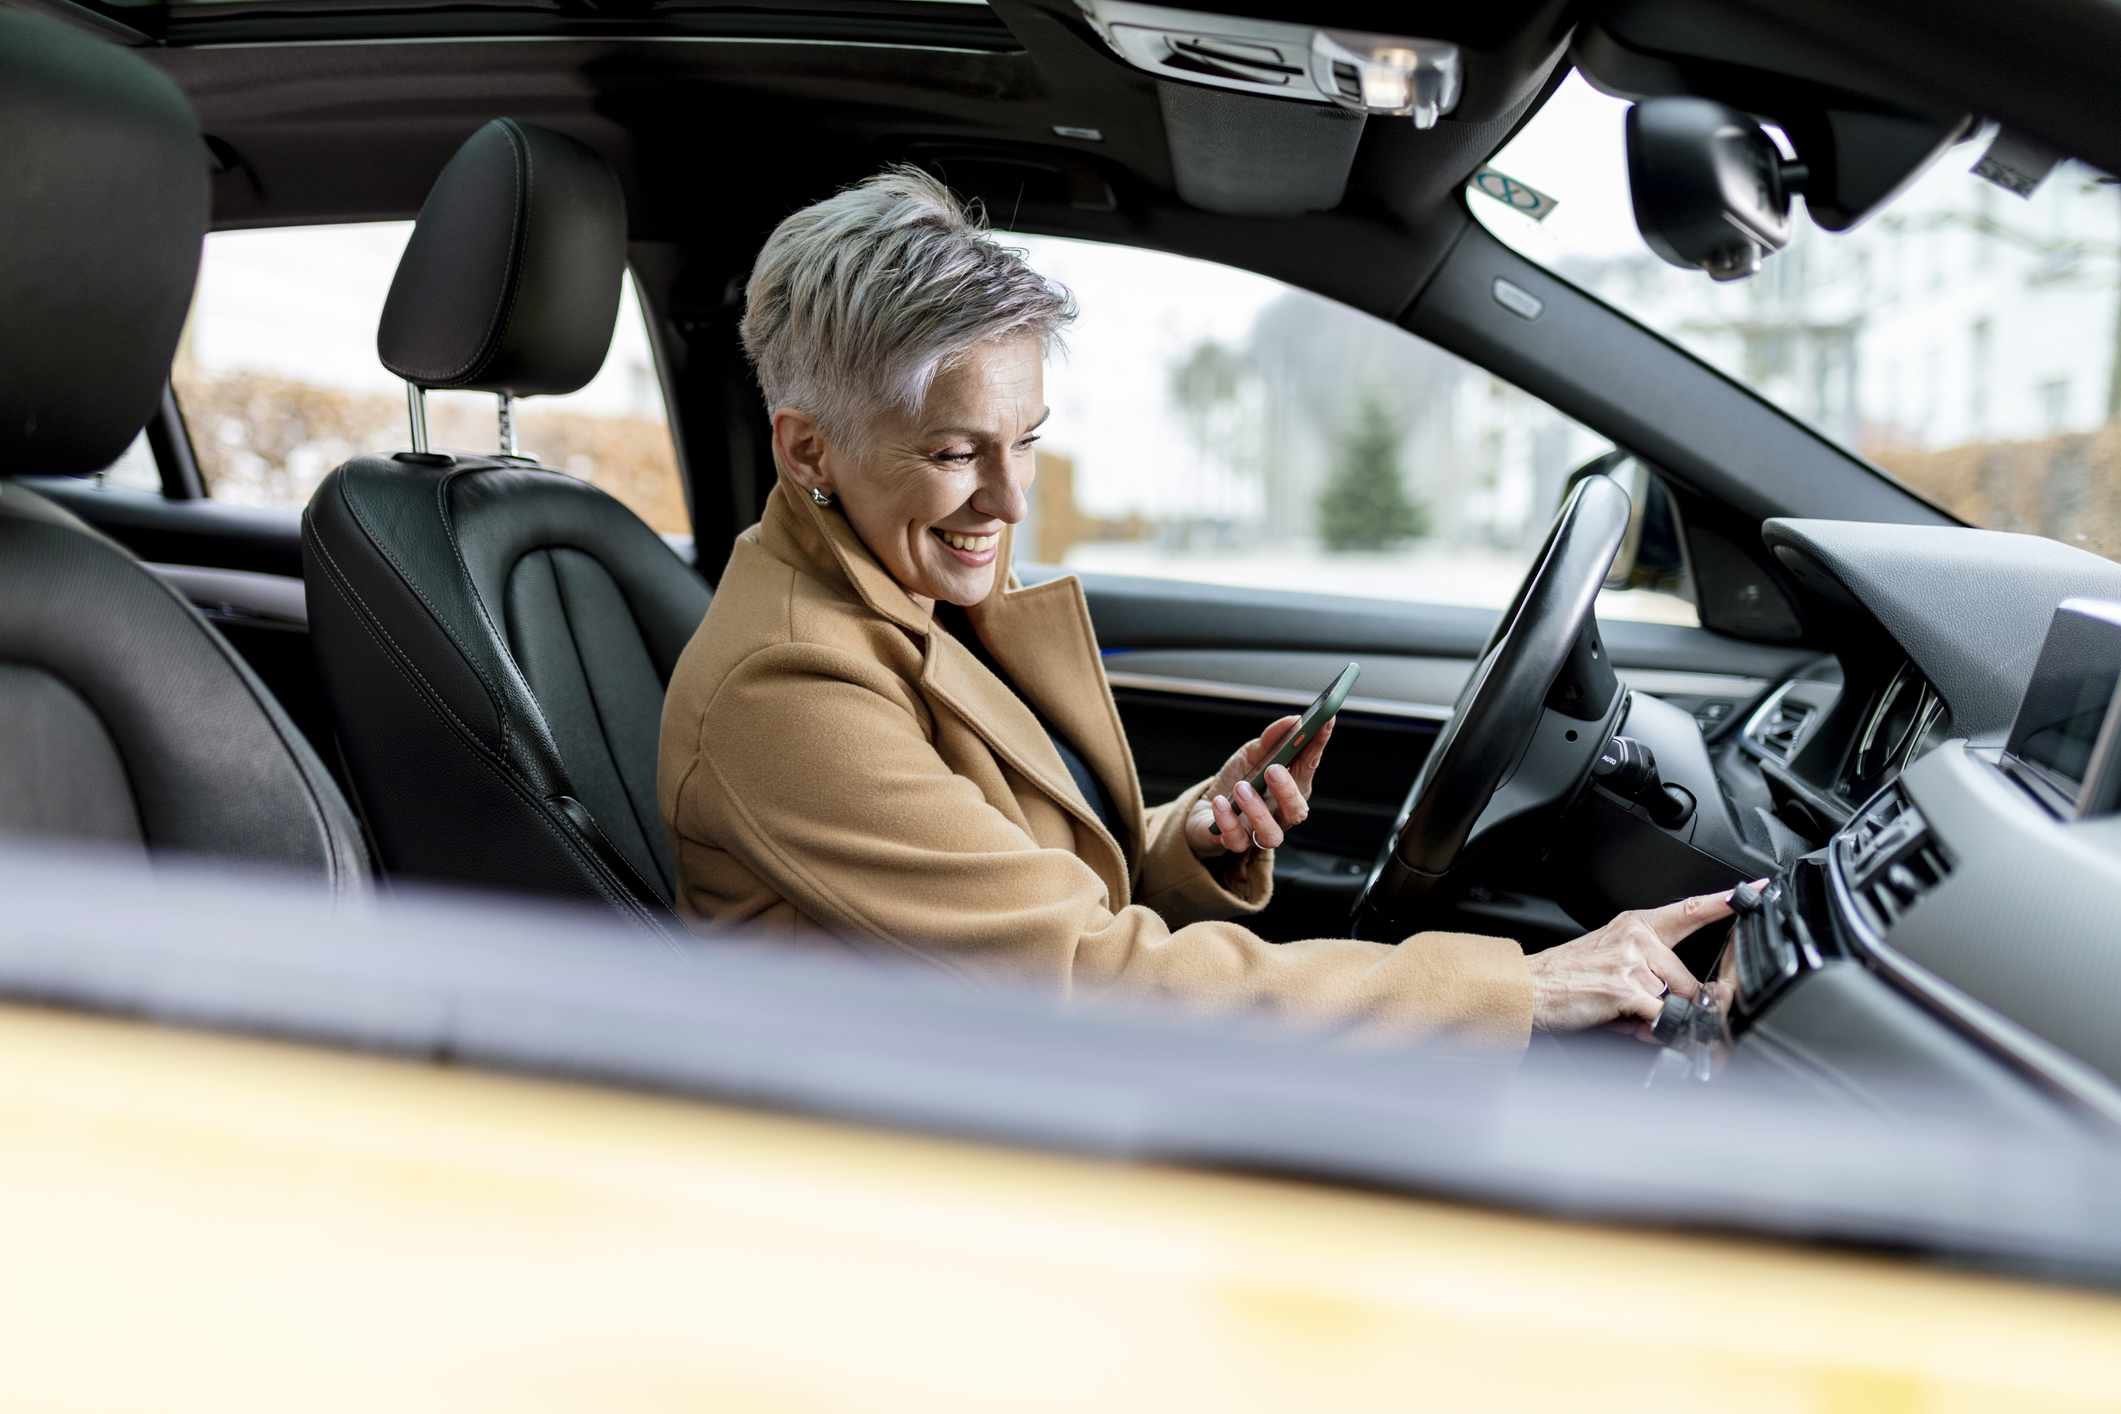 Woman with smartphone in car